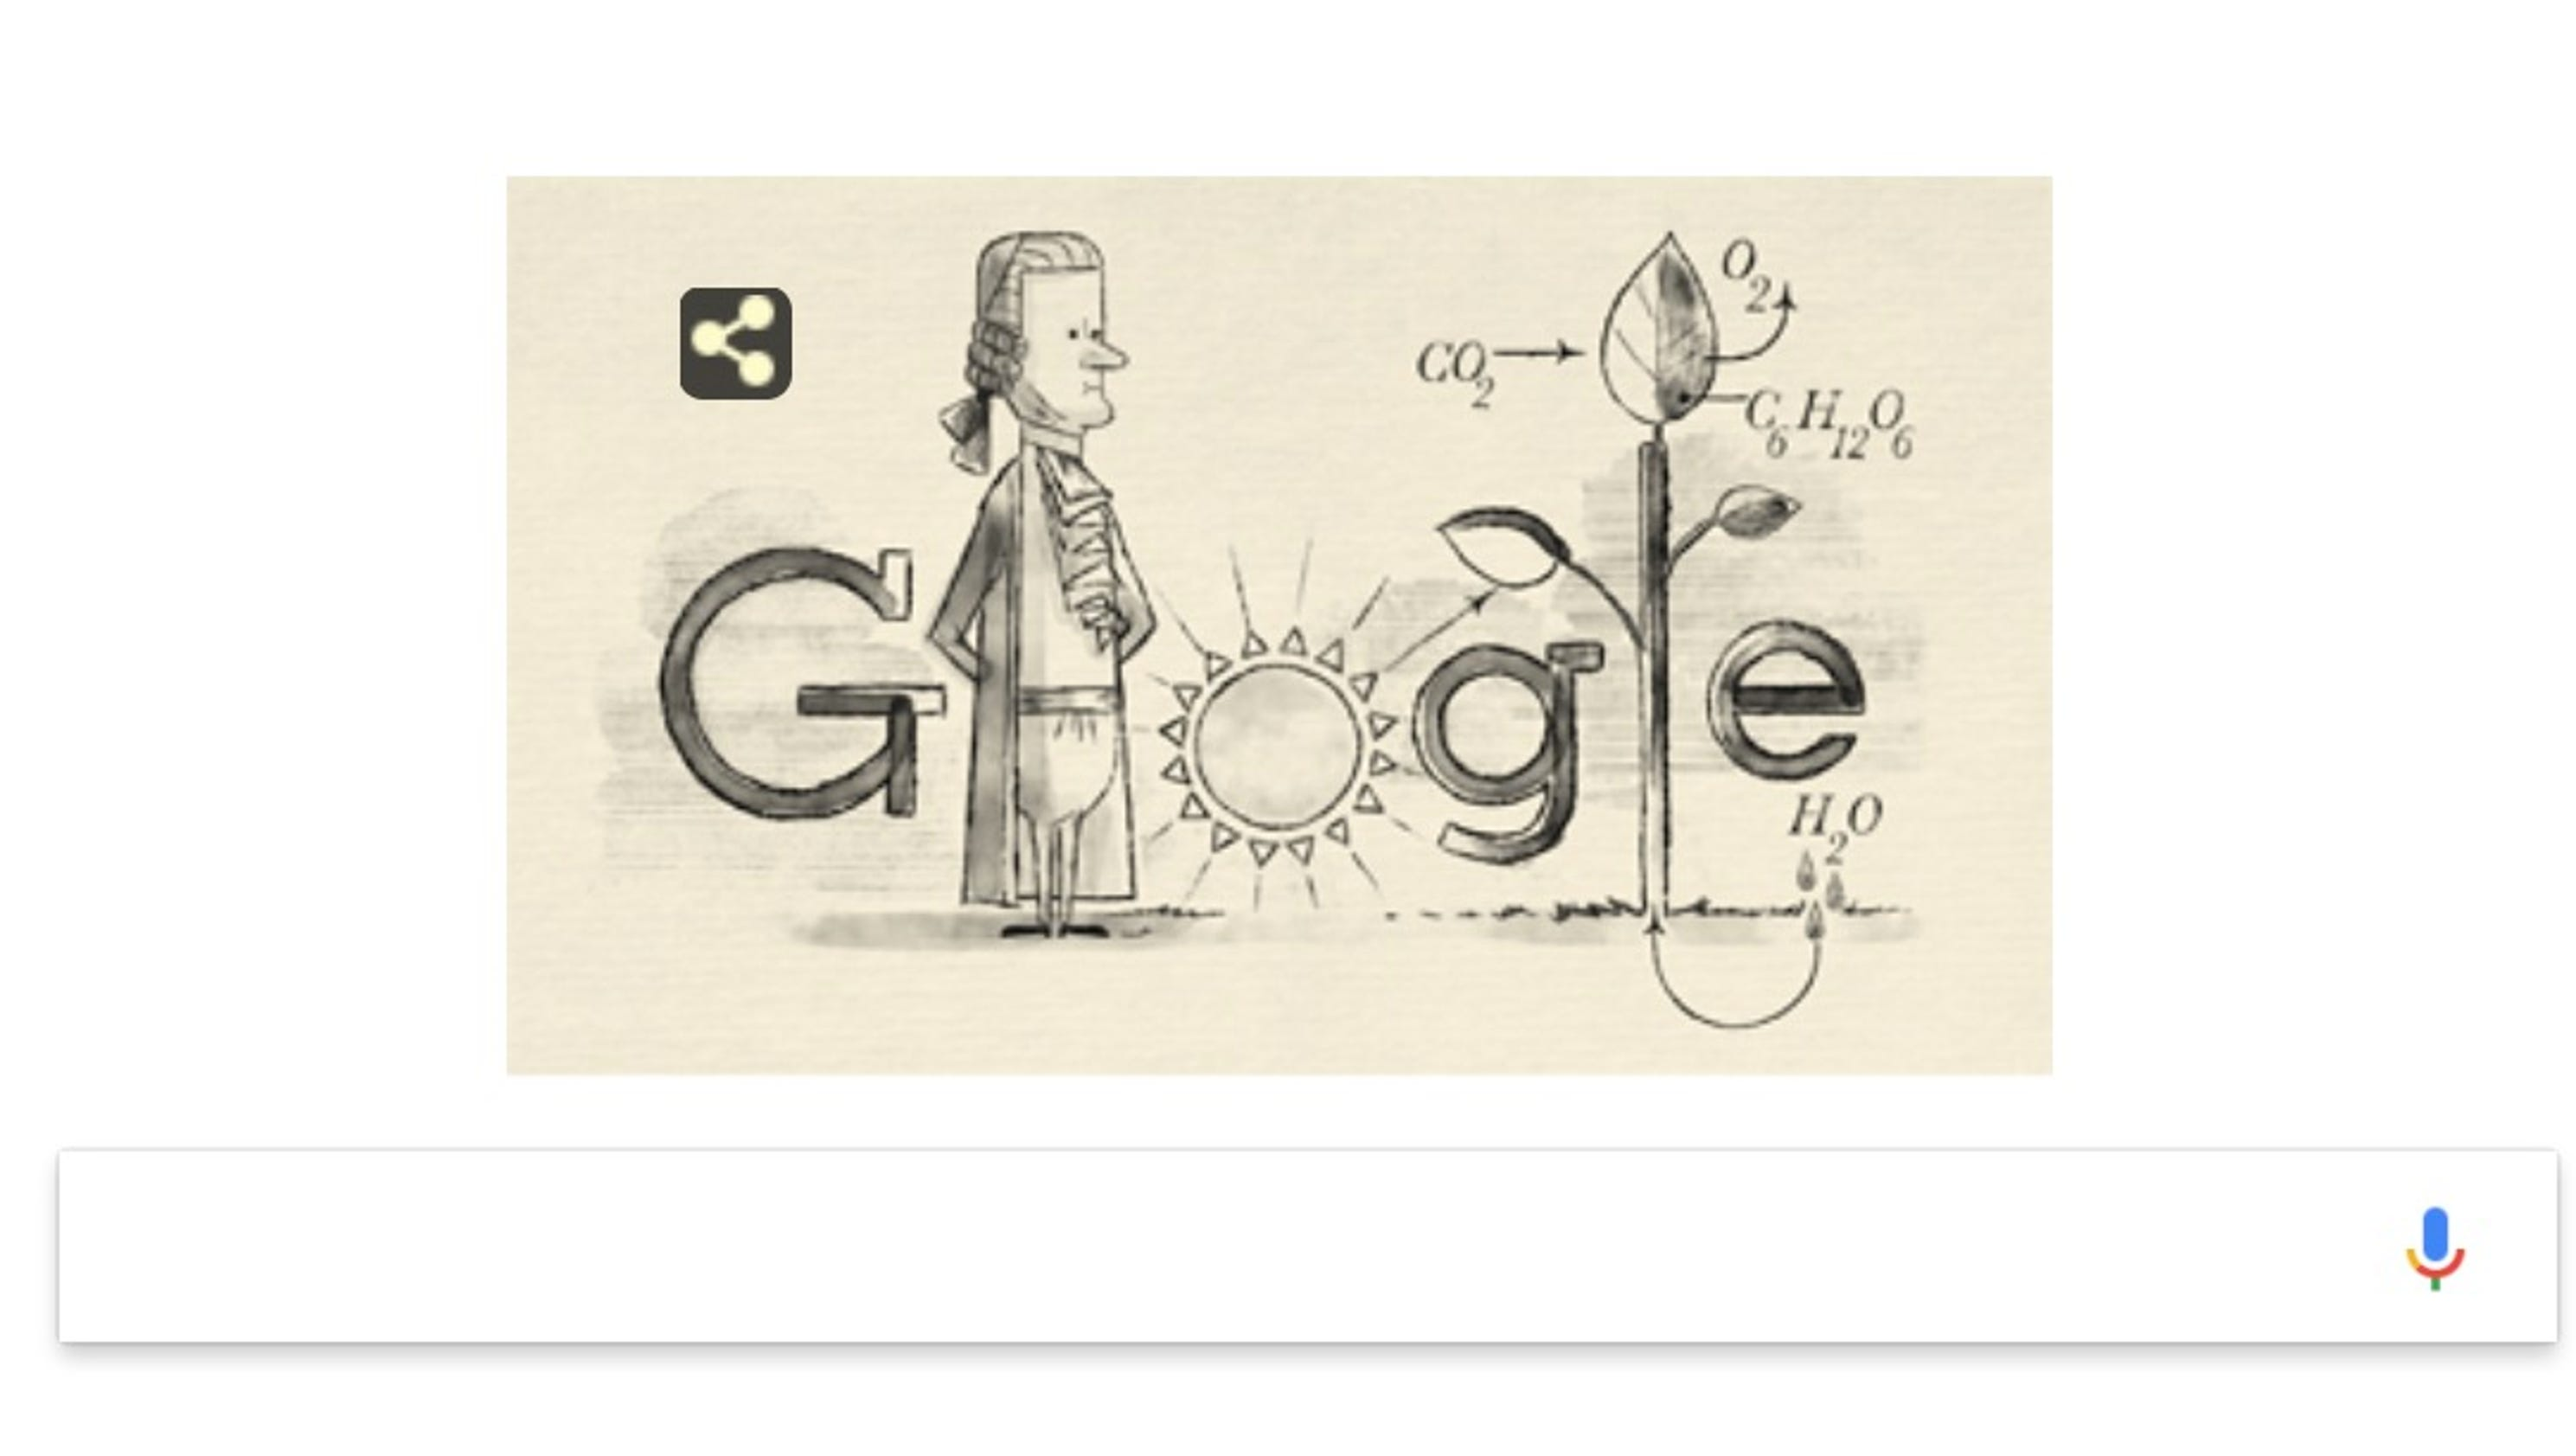 Jan Ingenhousz Google >> Jan Ingenhousz: Google Doodle honors father of photosynthesis